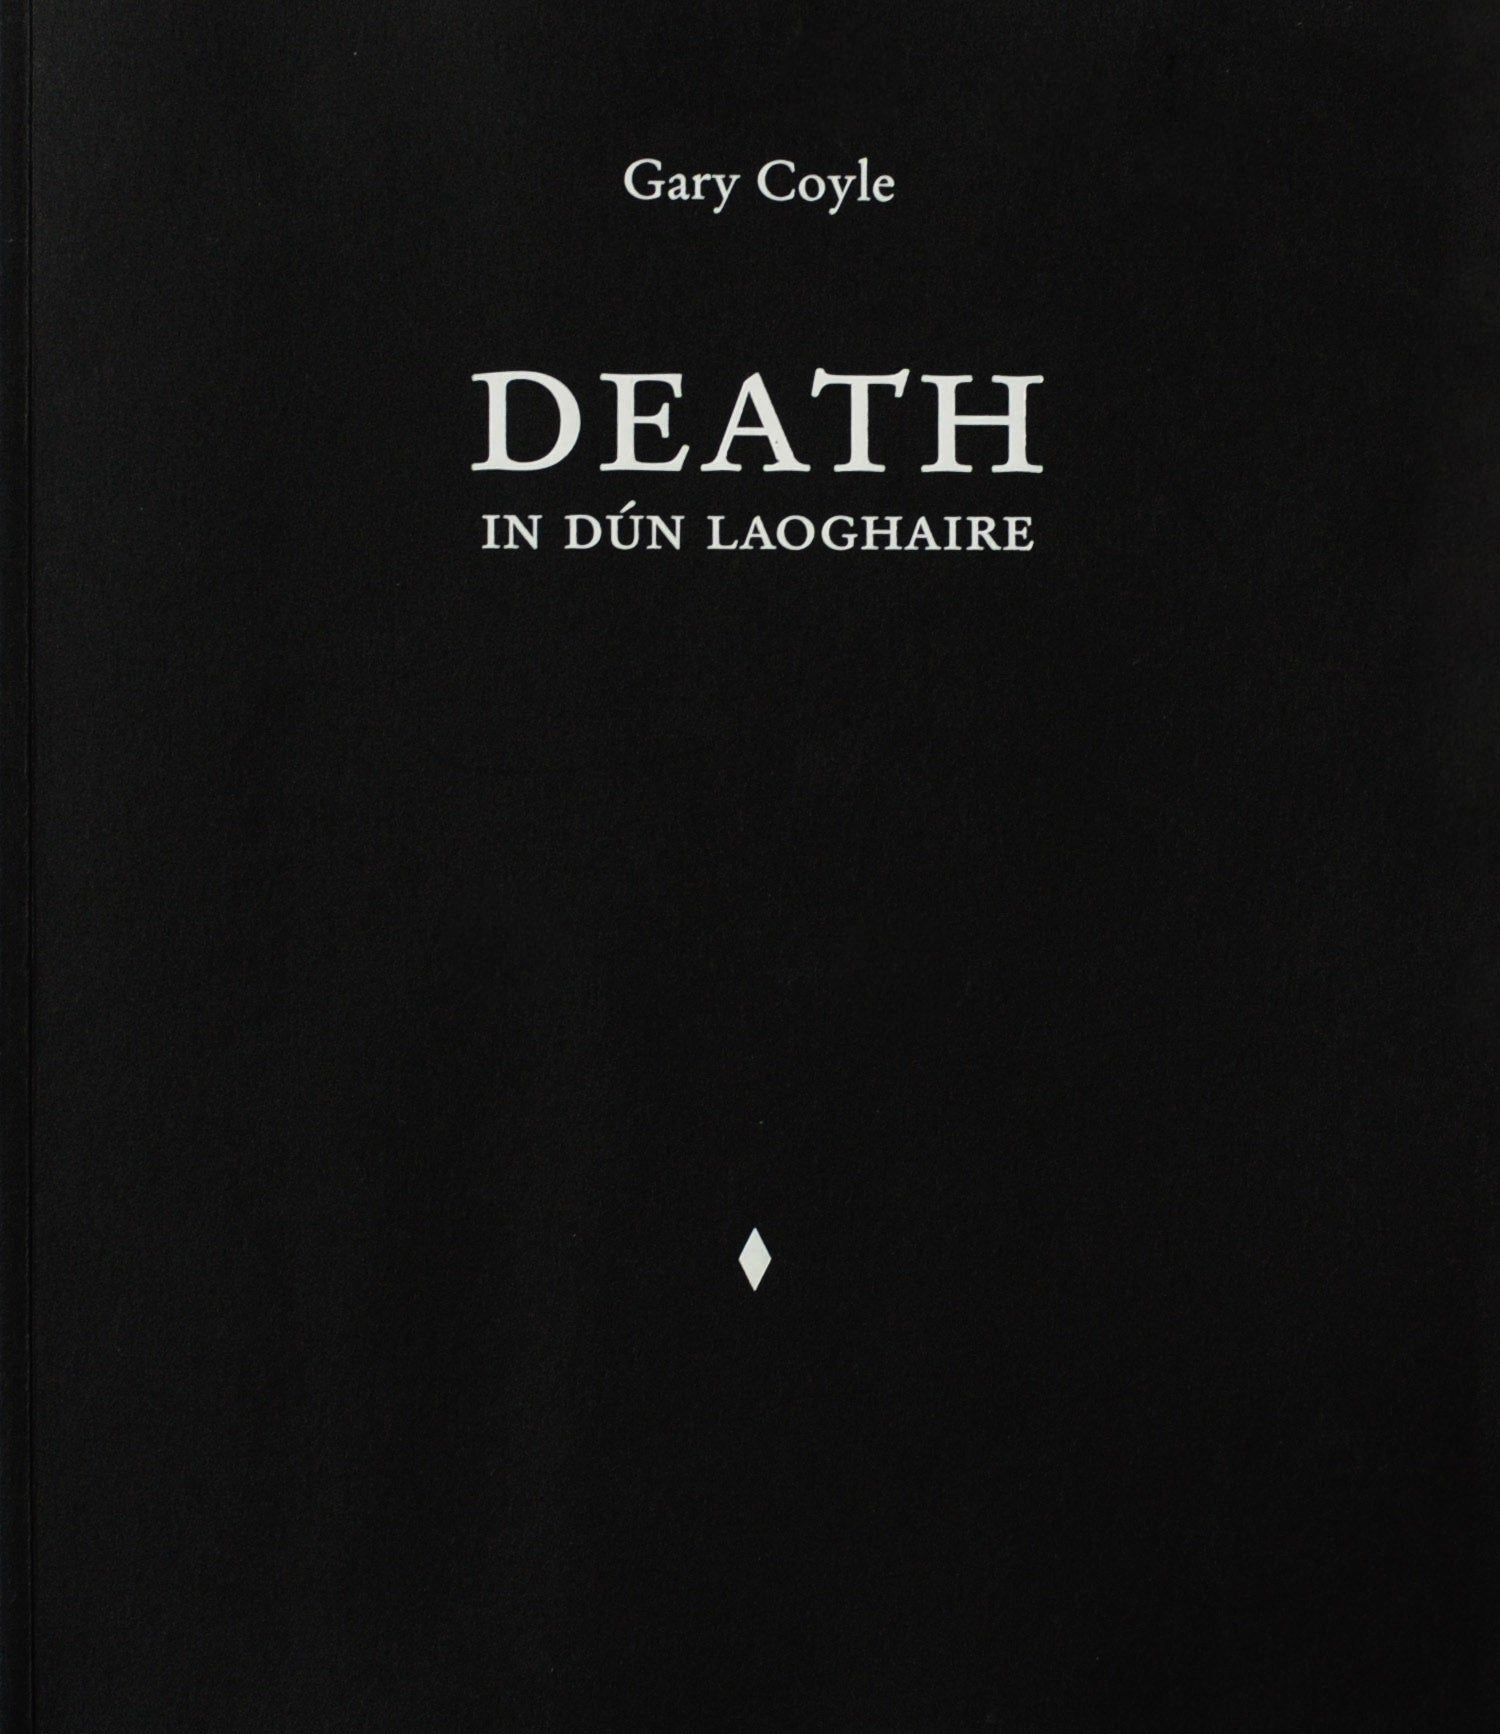 Death in Dún Laoghaire - Gary Coyle - The Library Project